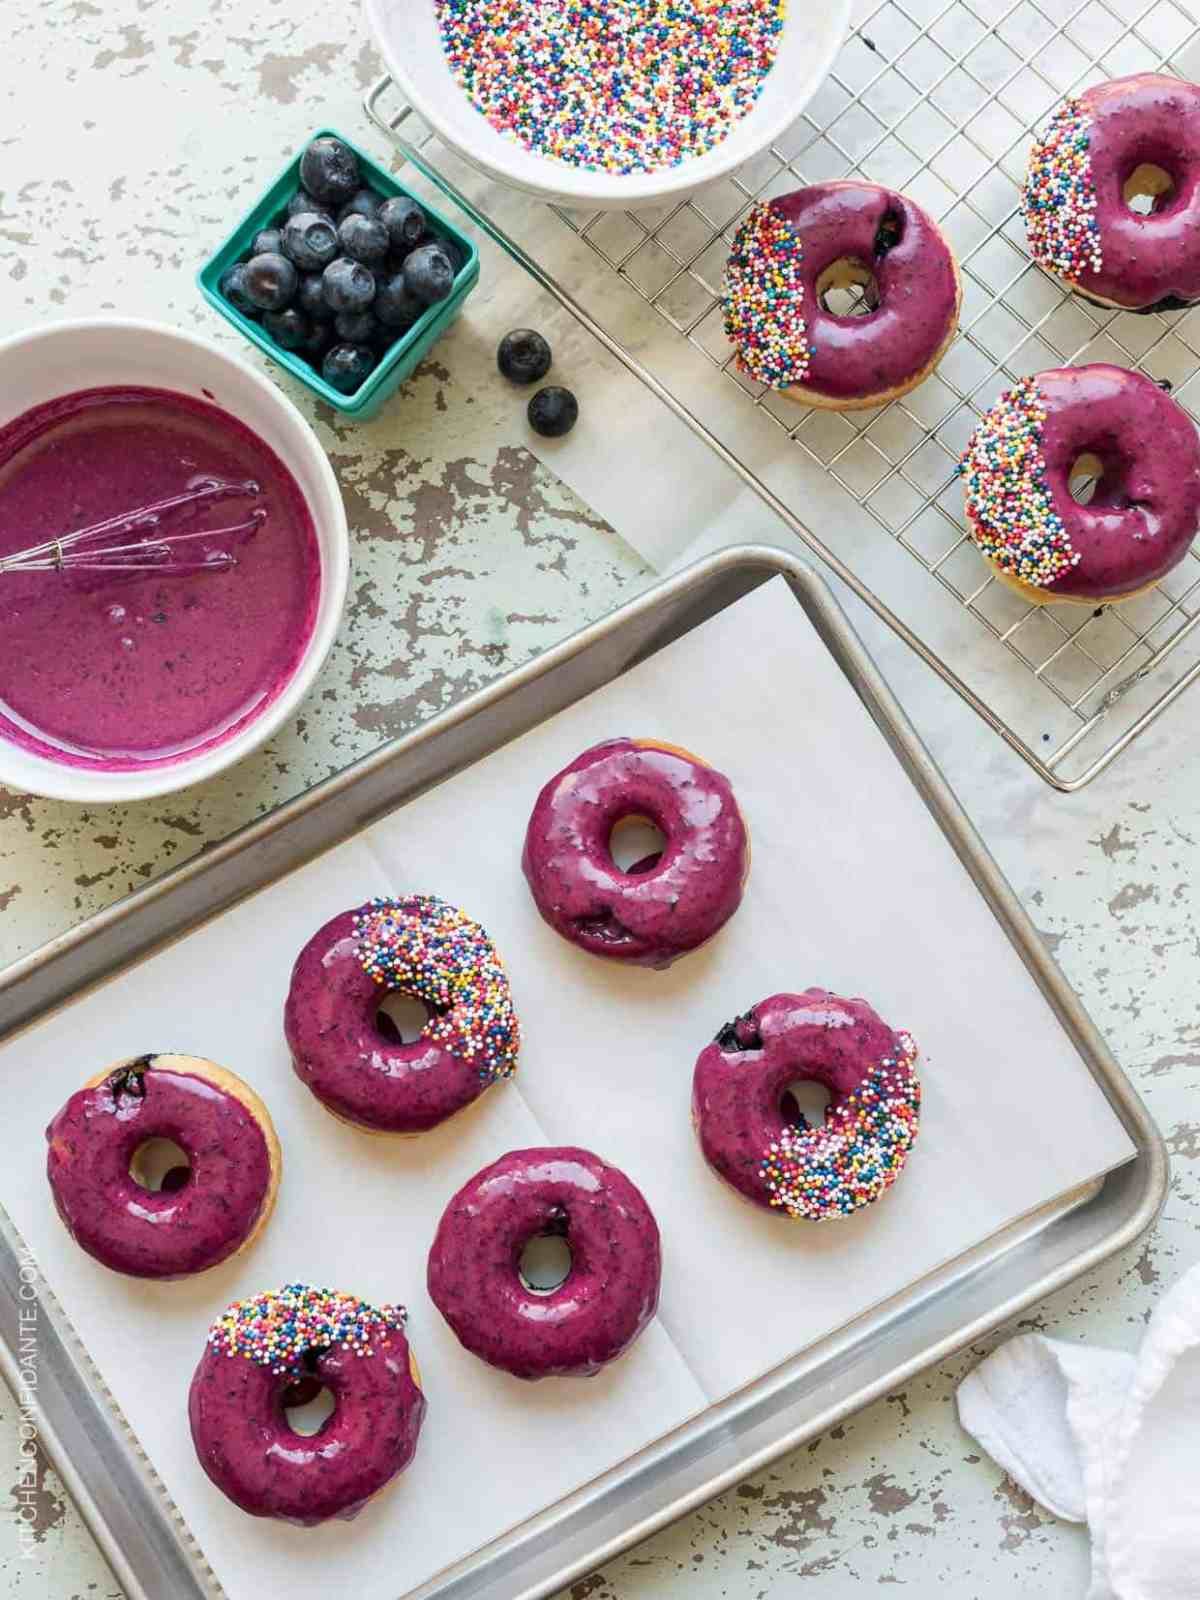 Baking tray of Blueberry Lemon Glazed Baked Donuts with sprinkles on top.